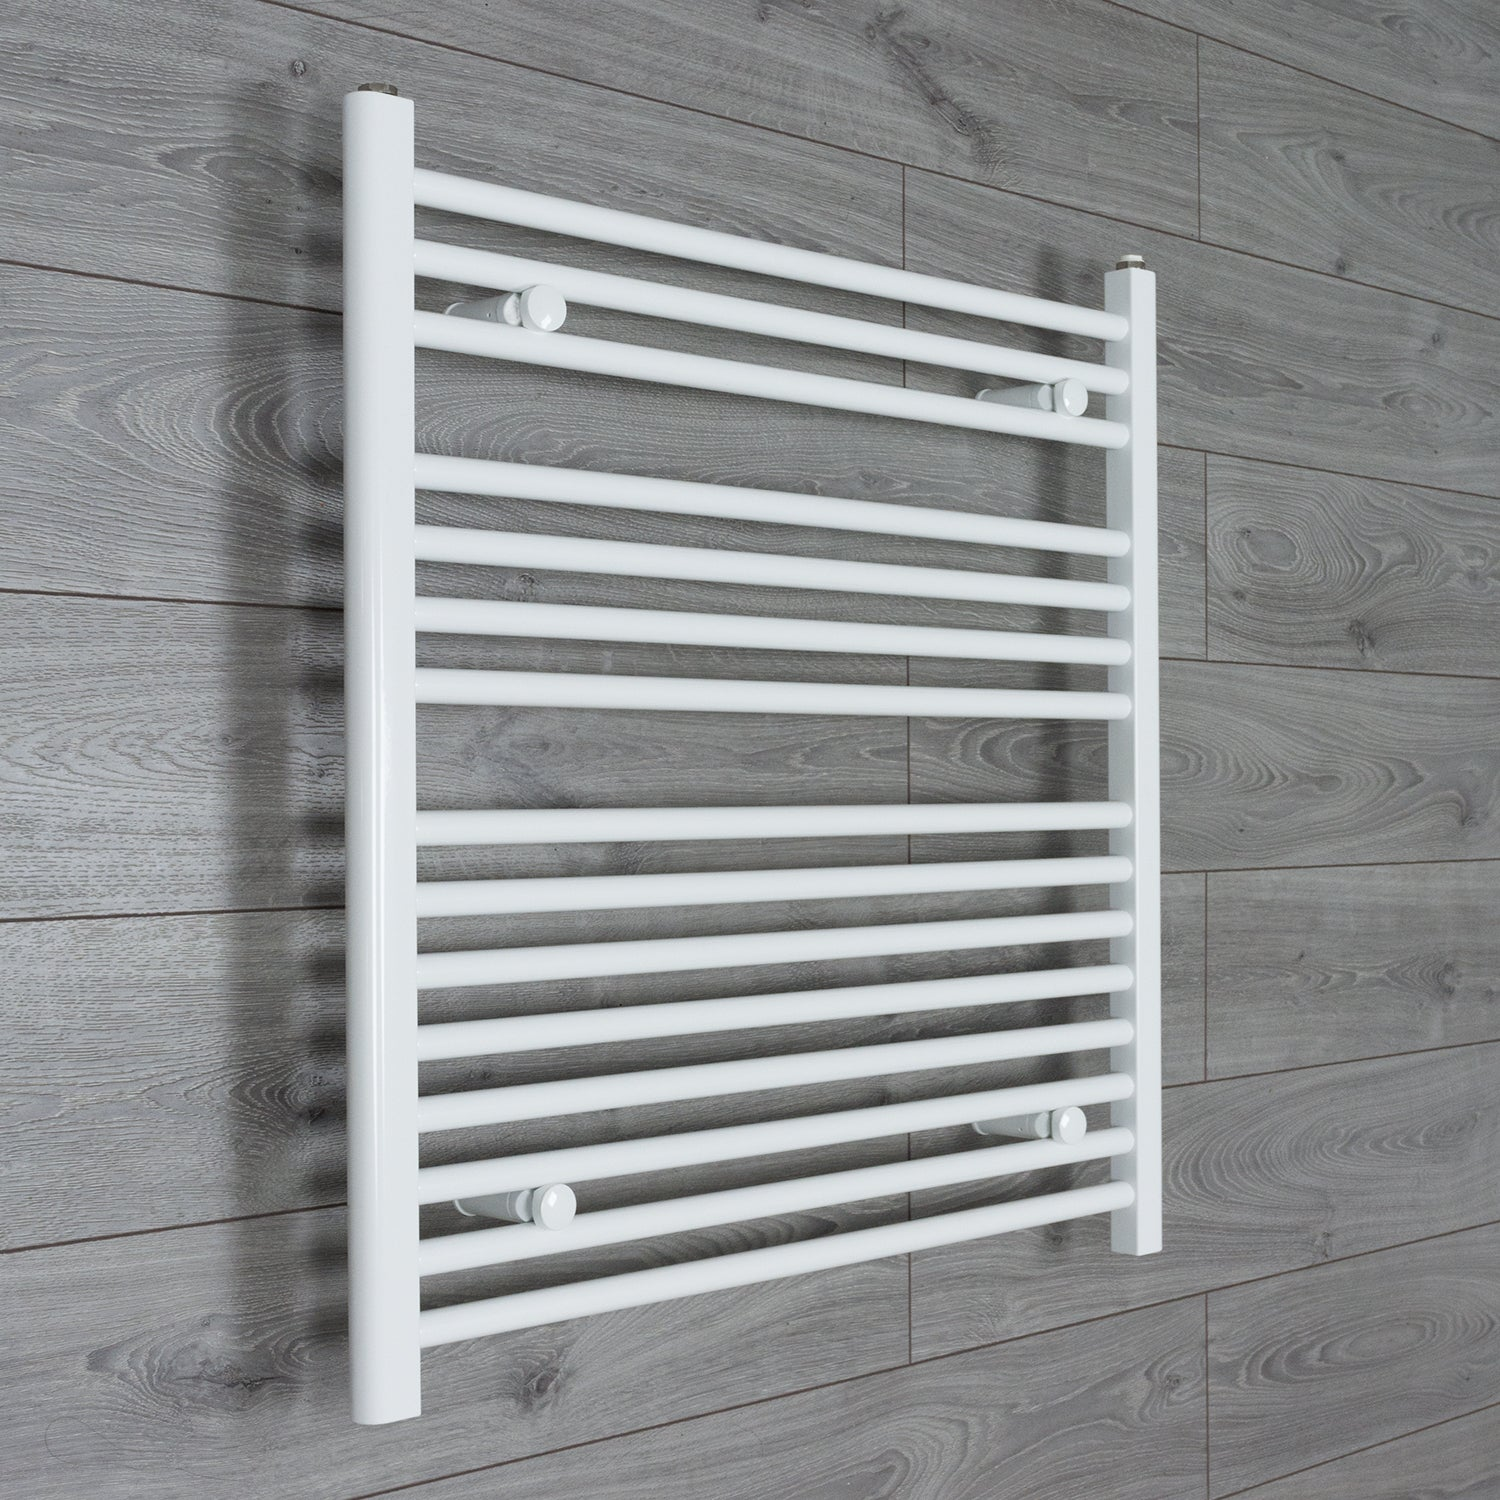 850mm Wide 800mm High White Towel Rail Radiator